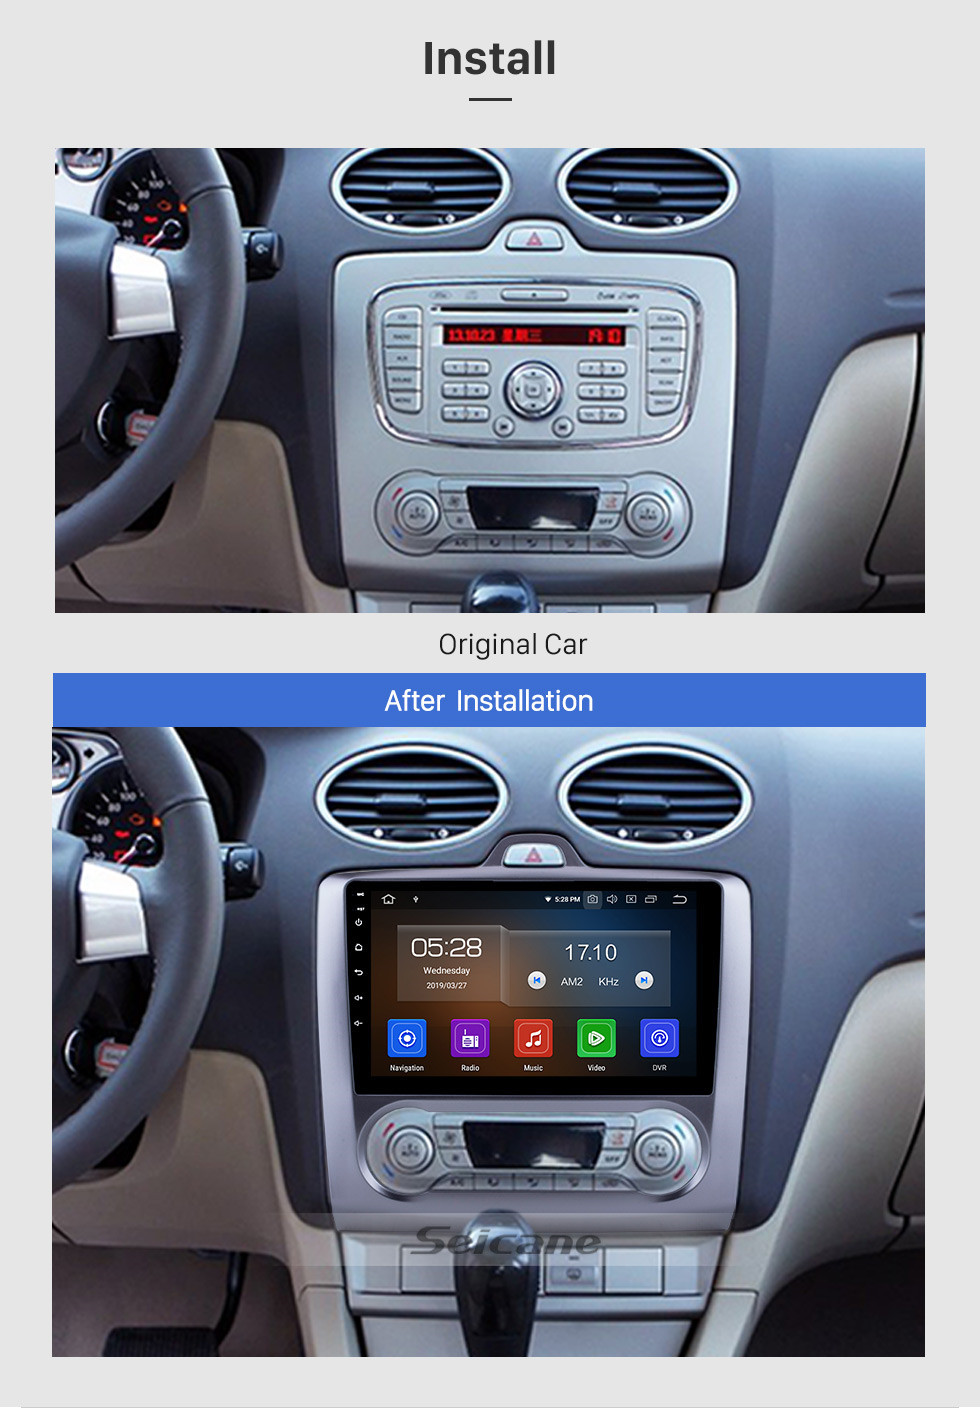 Seicane 9 Inch Android 10.0 HD Touchscreen Radio for 2004-2011 Ford Focus 2 Auto A/C with GPS Navigation Bluetooth Car Stereo Mirror Link USB RDS DAB+ 3G Wifi Steering Wheel Control